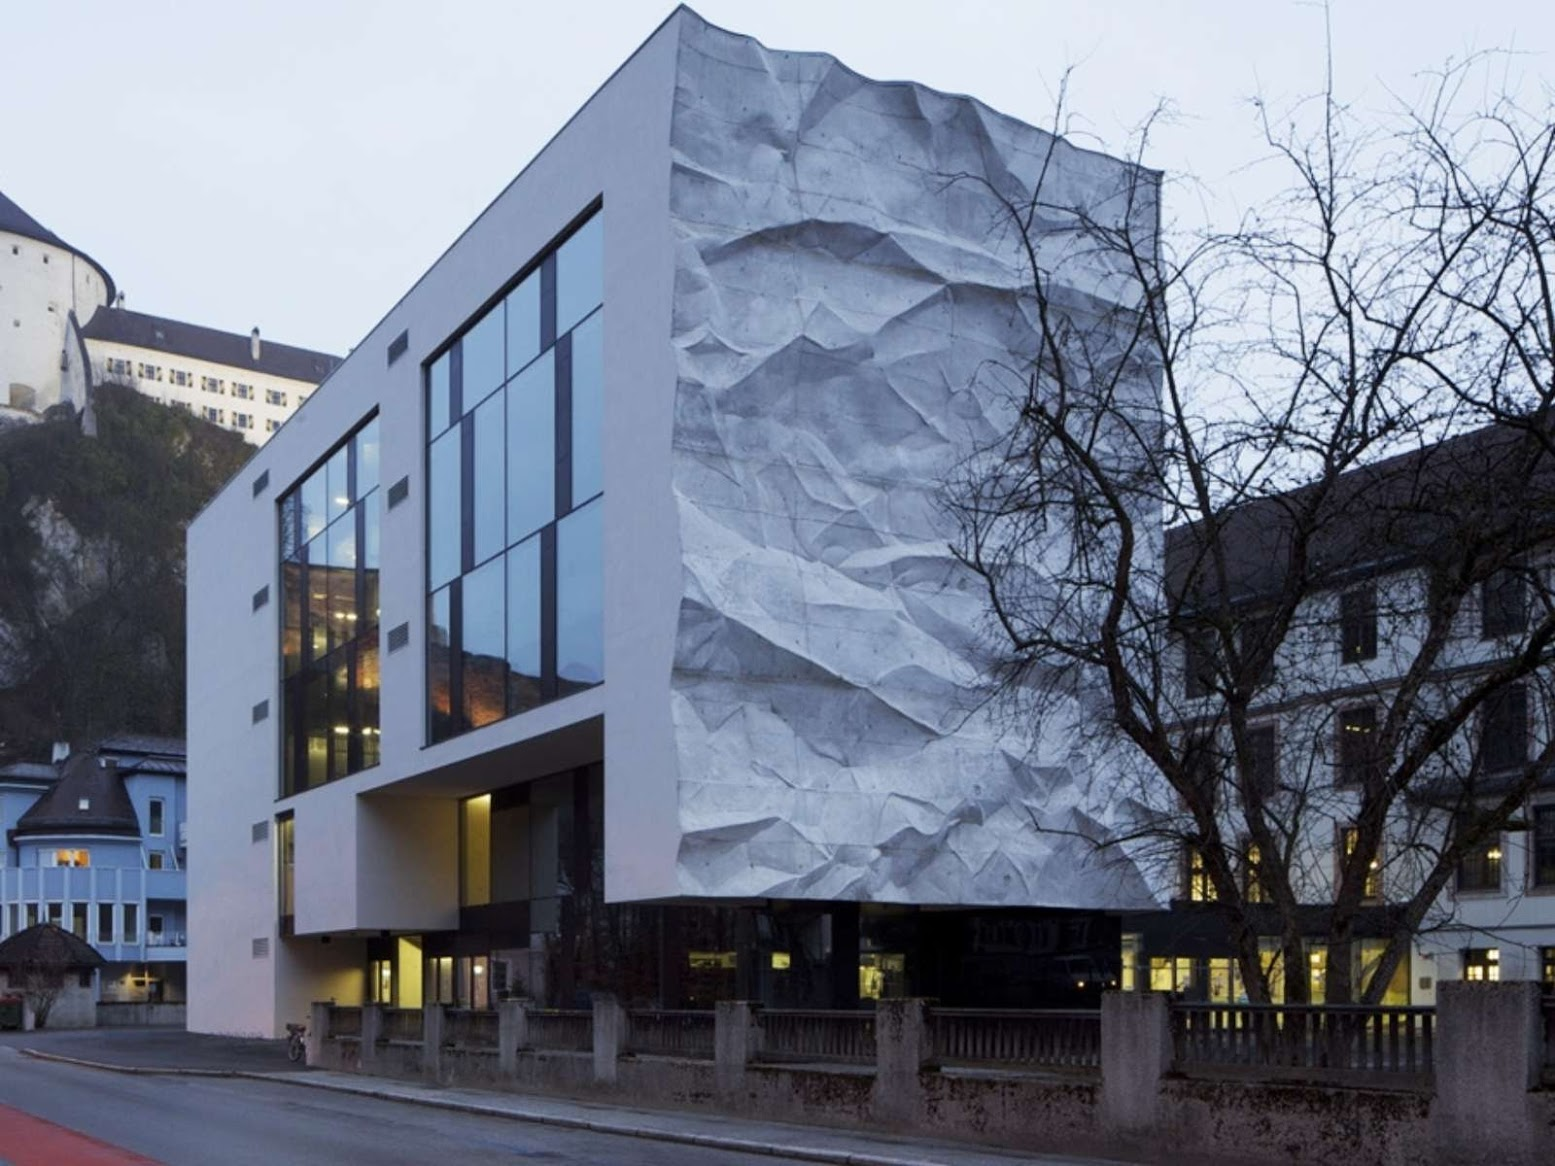 Kufstein, Austria: [SCHOOL EXTENSION WITH CRINKLED WALL BY JOHANNES WIESFLECKER]